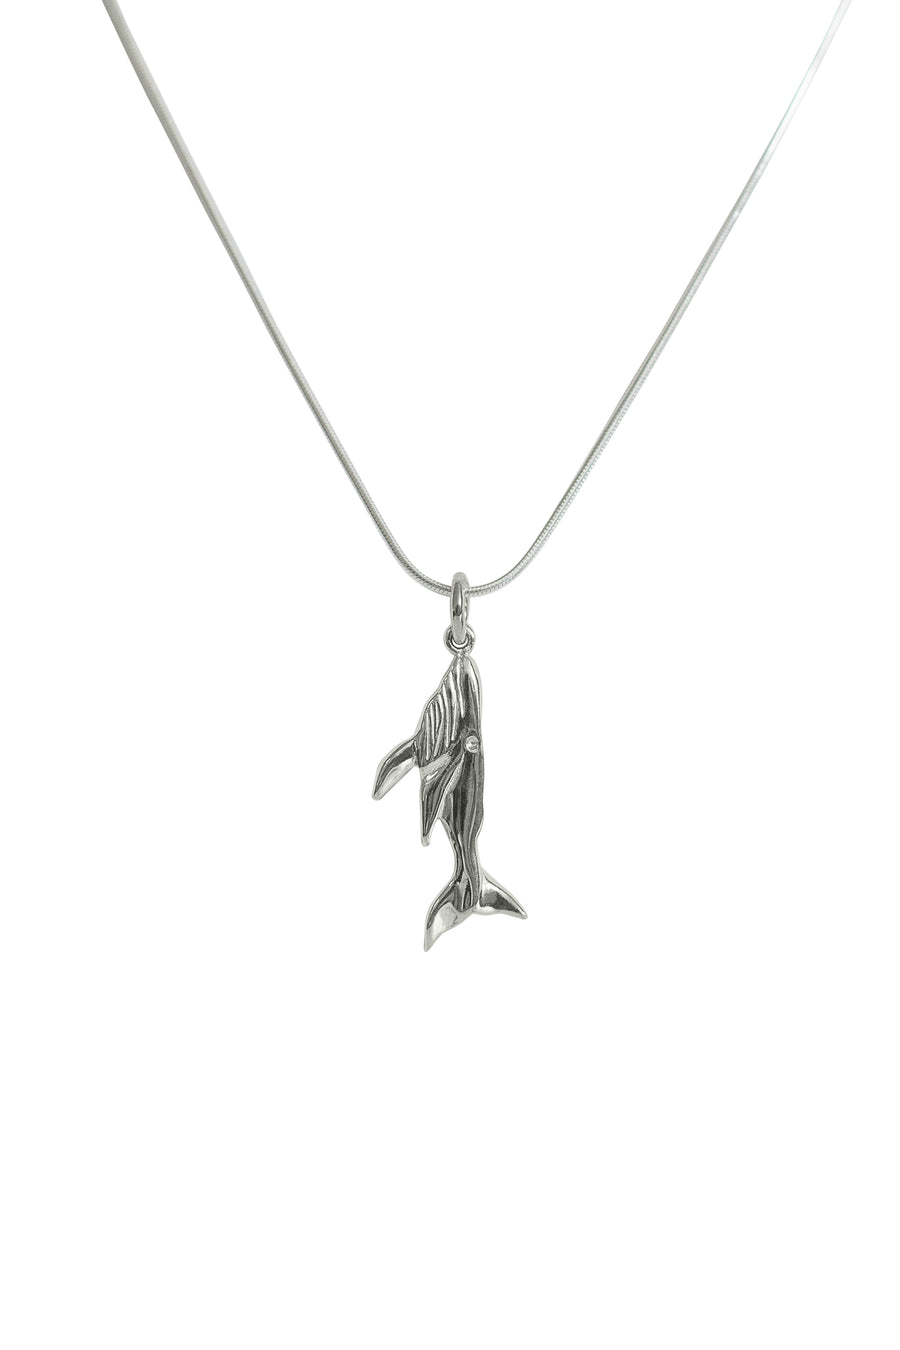 Whale Pendant  - Sterling Silver